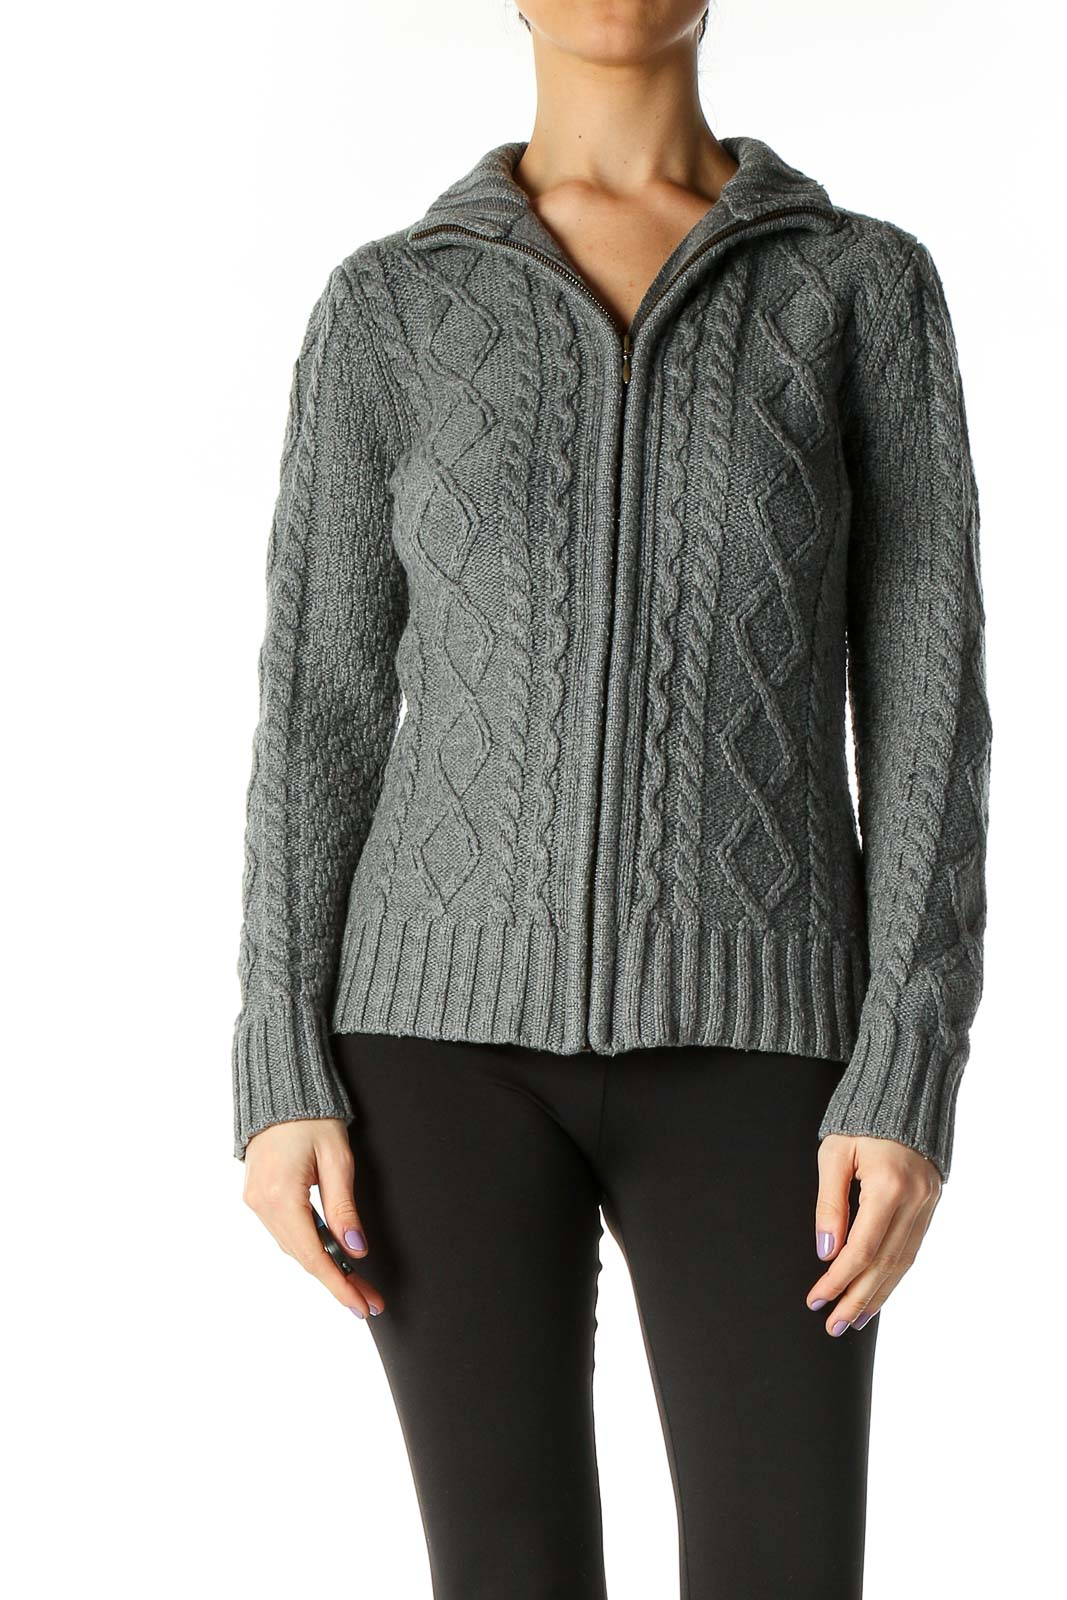 Gray Knit Jacket Front